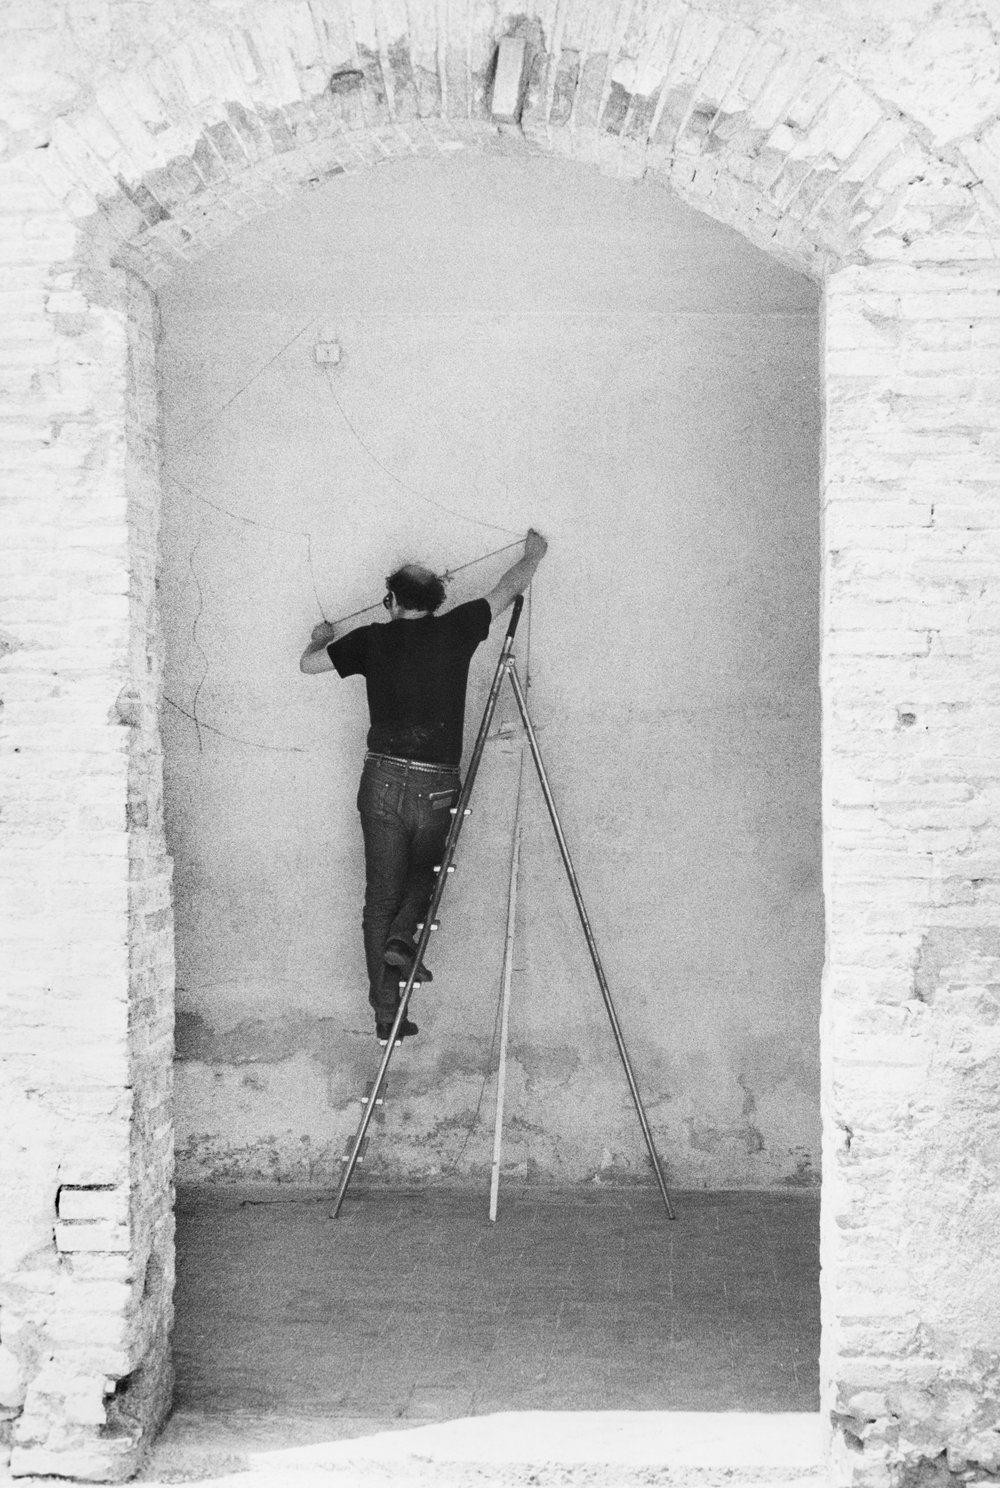 Sol LeWitt installing  Wall Drawing #136  at Chiostro di San Nicolò, Spoleto, Italy, 1972. © 2018 Estate of Sol LeWitt/Artists Rights Society (ARS), New York. Photo by Giorgio Lucarini.